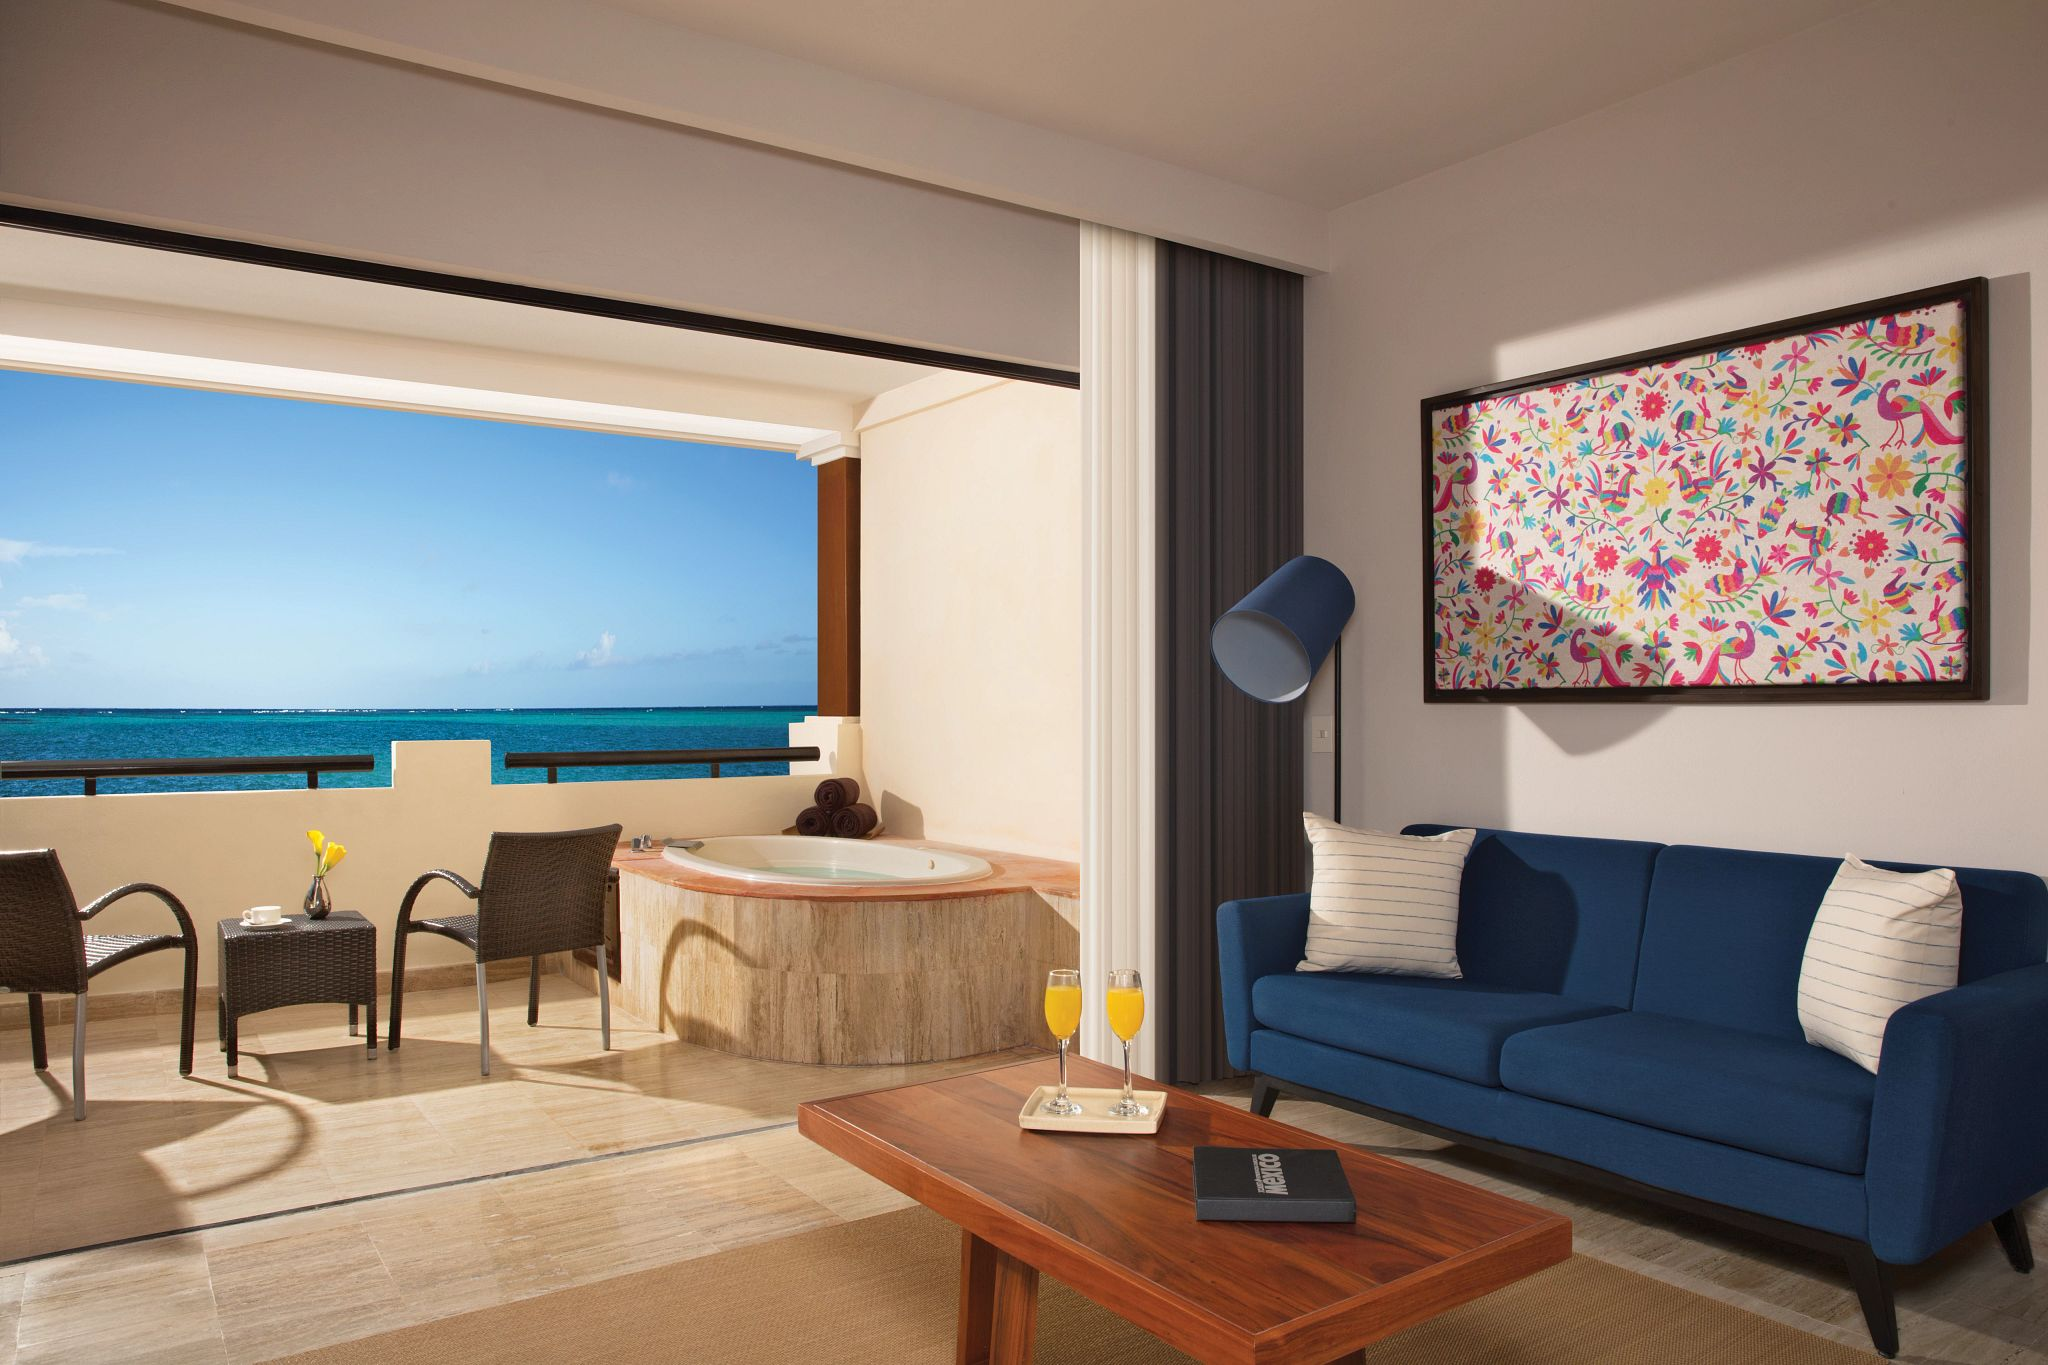 living area and terrace of a hotel suite with an ocean view